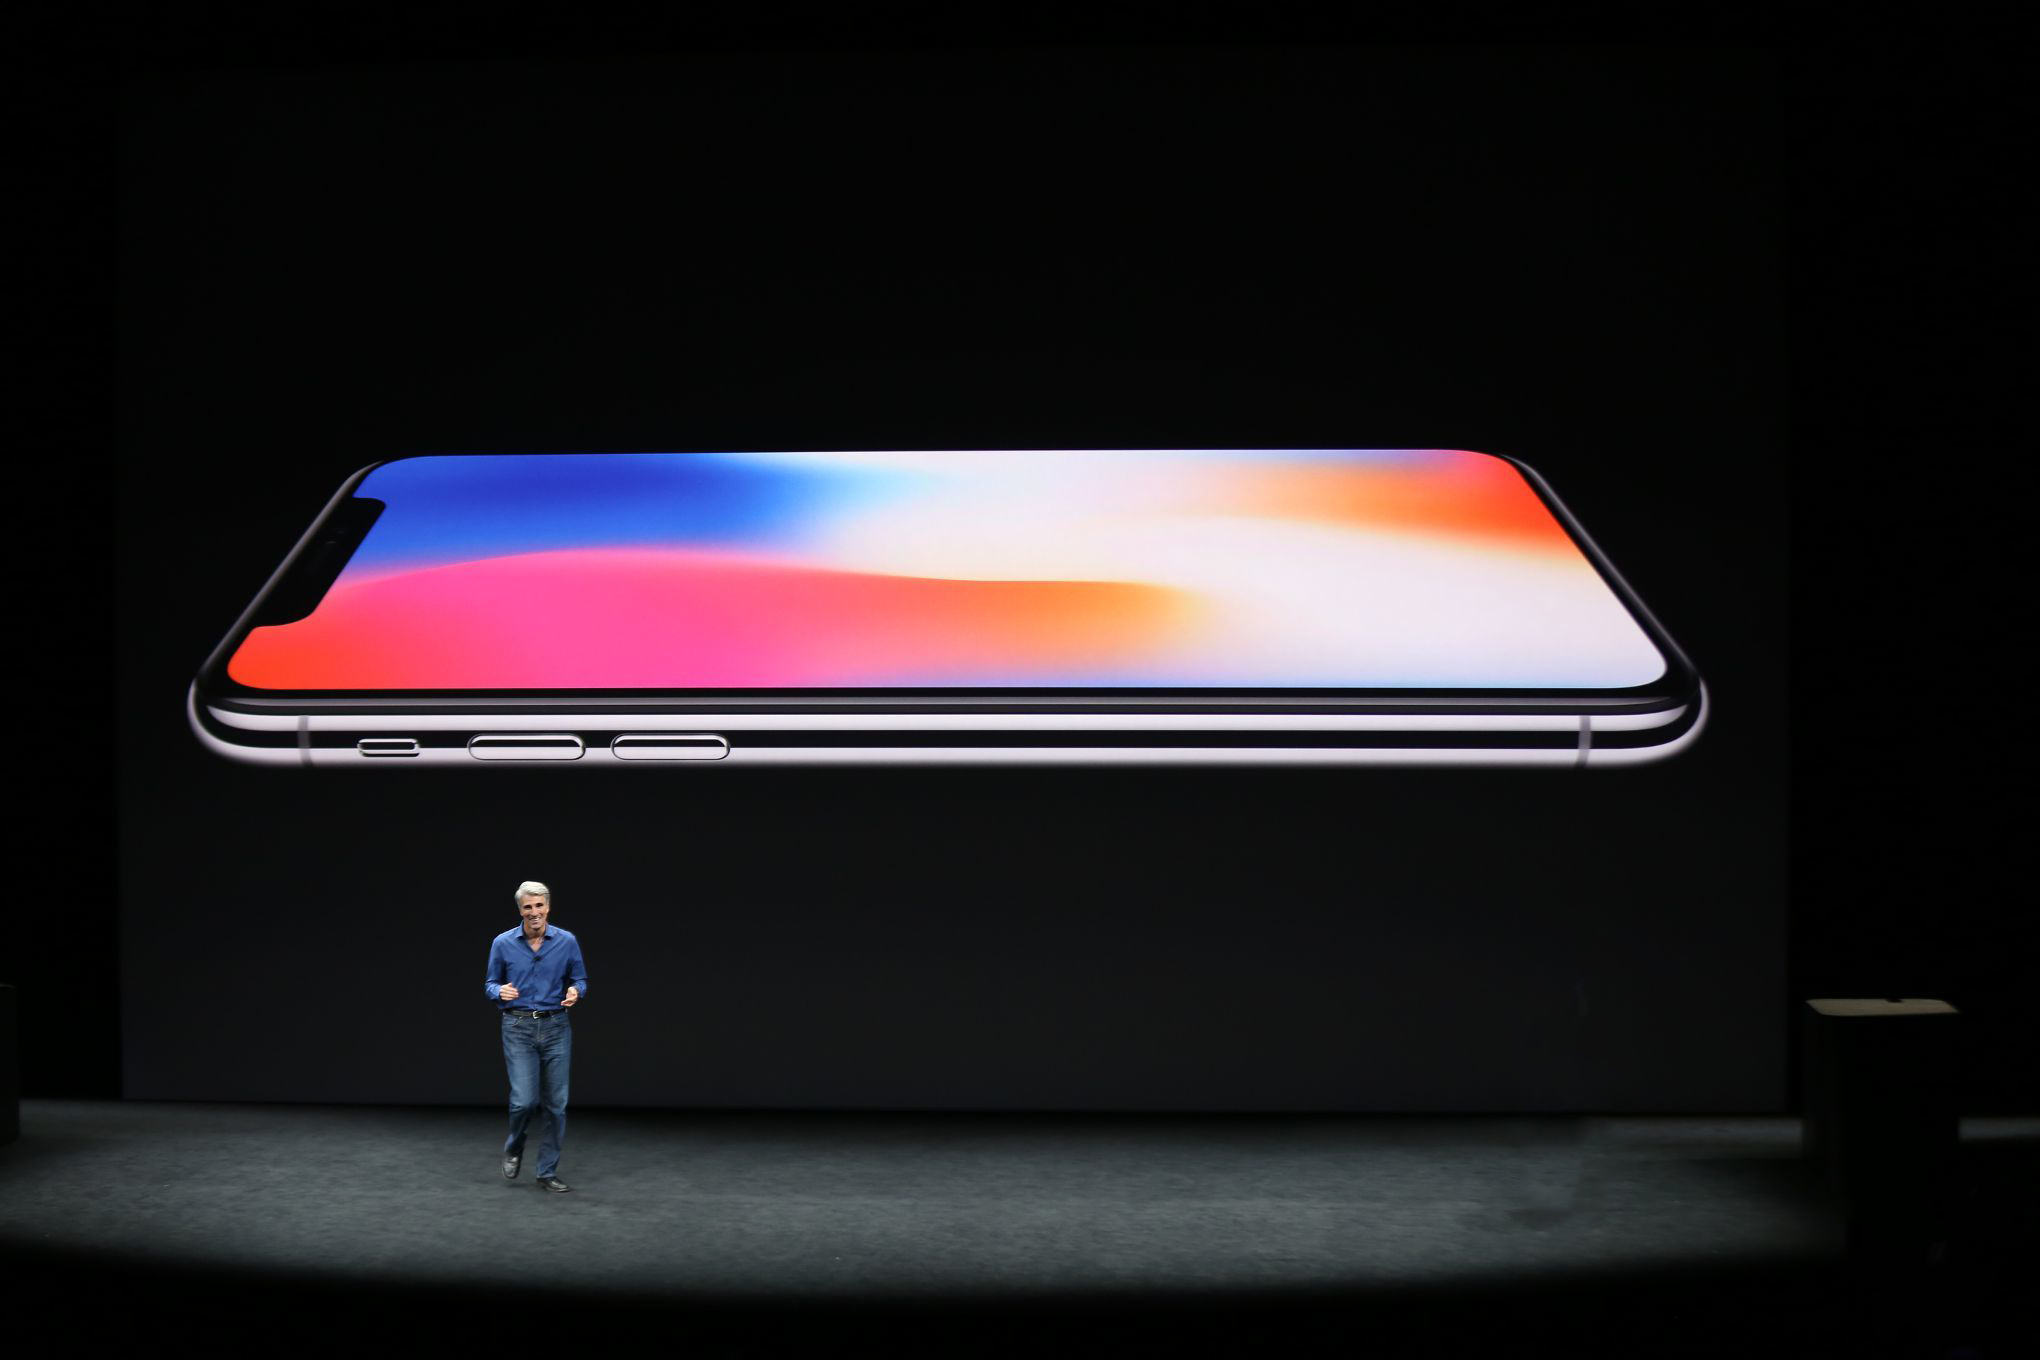 apple-iphone-2017-20170912-11808.JPG